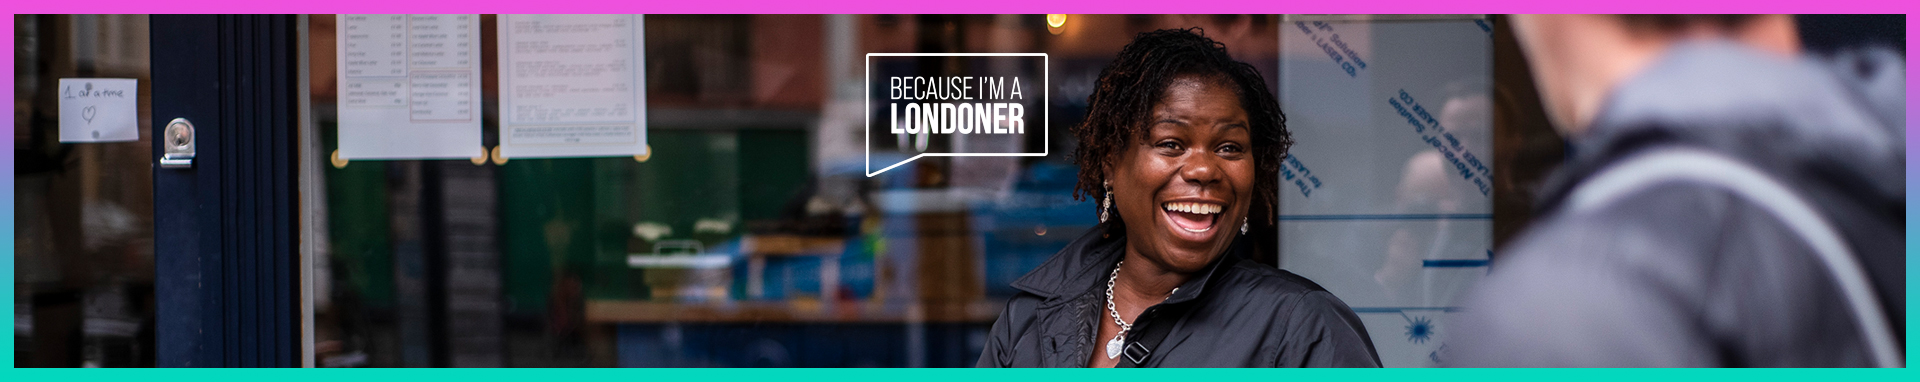 """A lady stands in front of a shopfront, she's smiling as a man walks past in the foreground. A logo worded """"Because I'm a Londoner"""" is overlaid on the image, inside a speech bubble."""